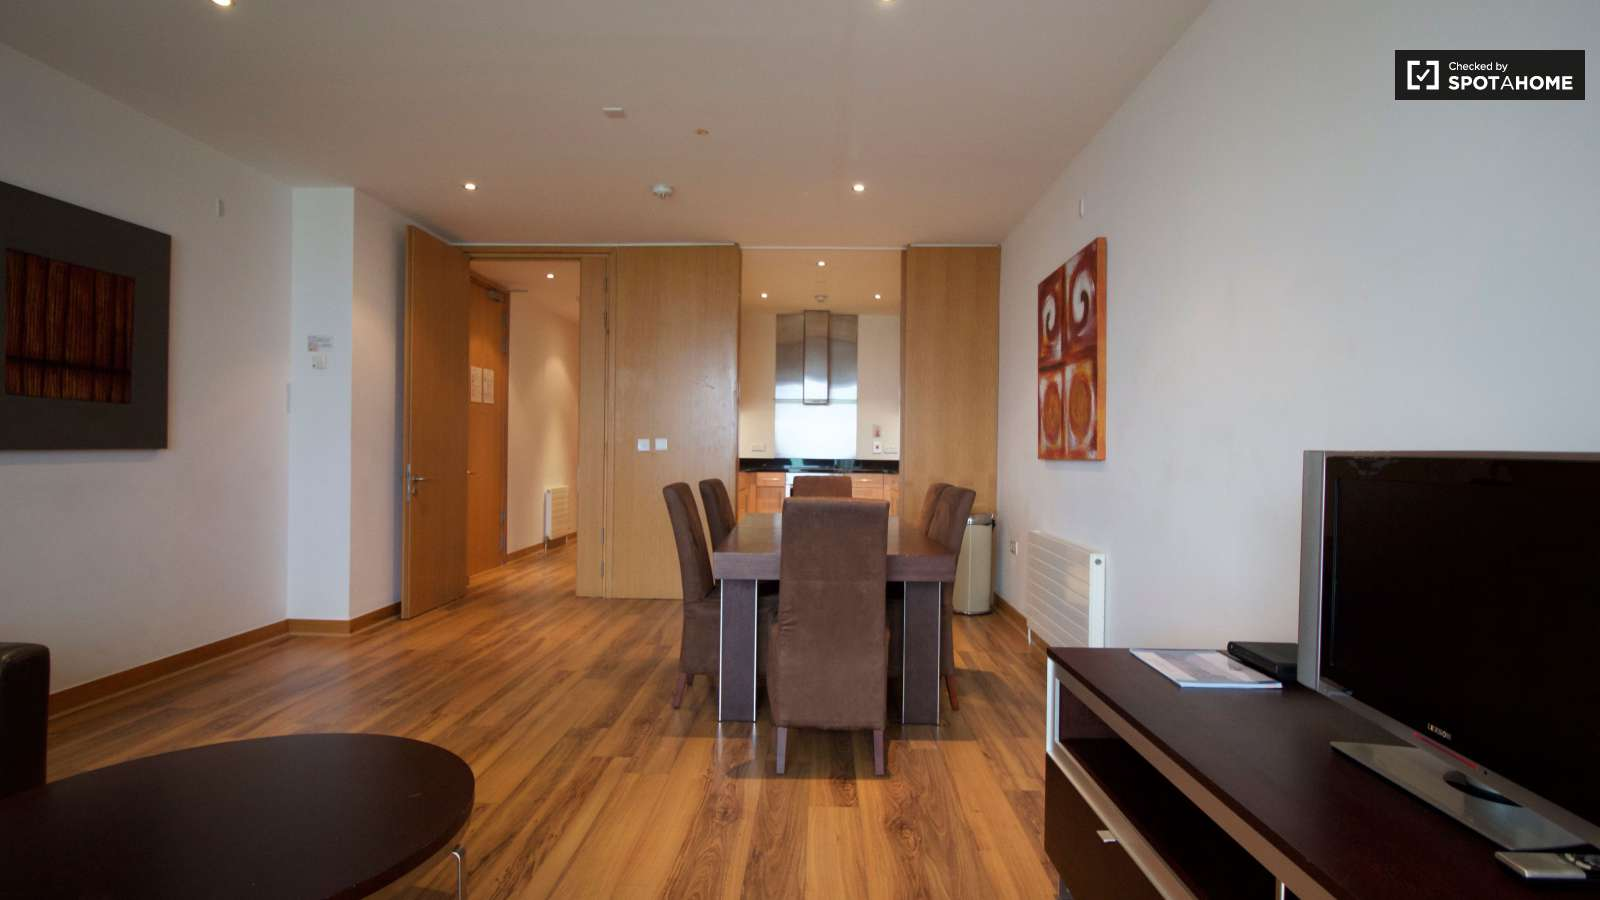 Living Room. 2 Bedroom Apartment With Utilities Included in Dublin  ref  97143